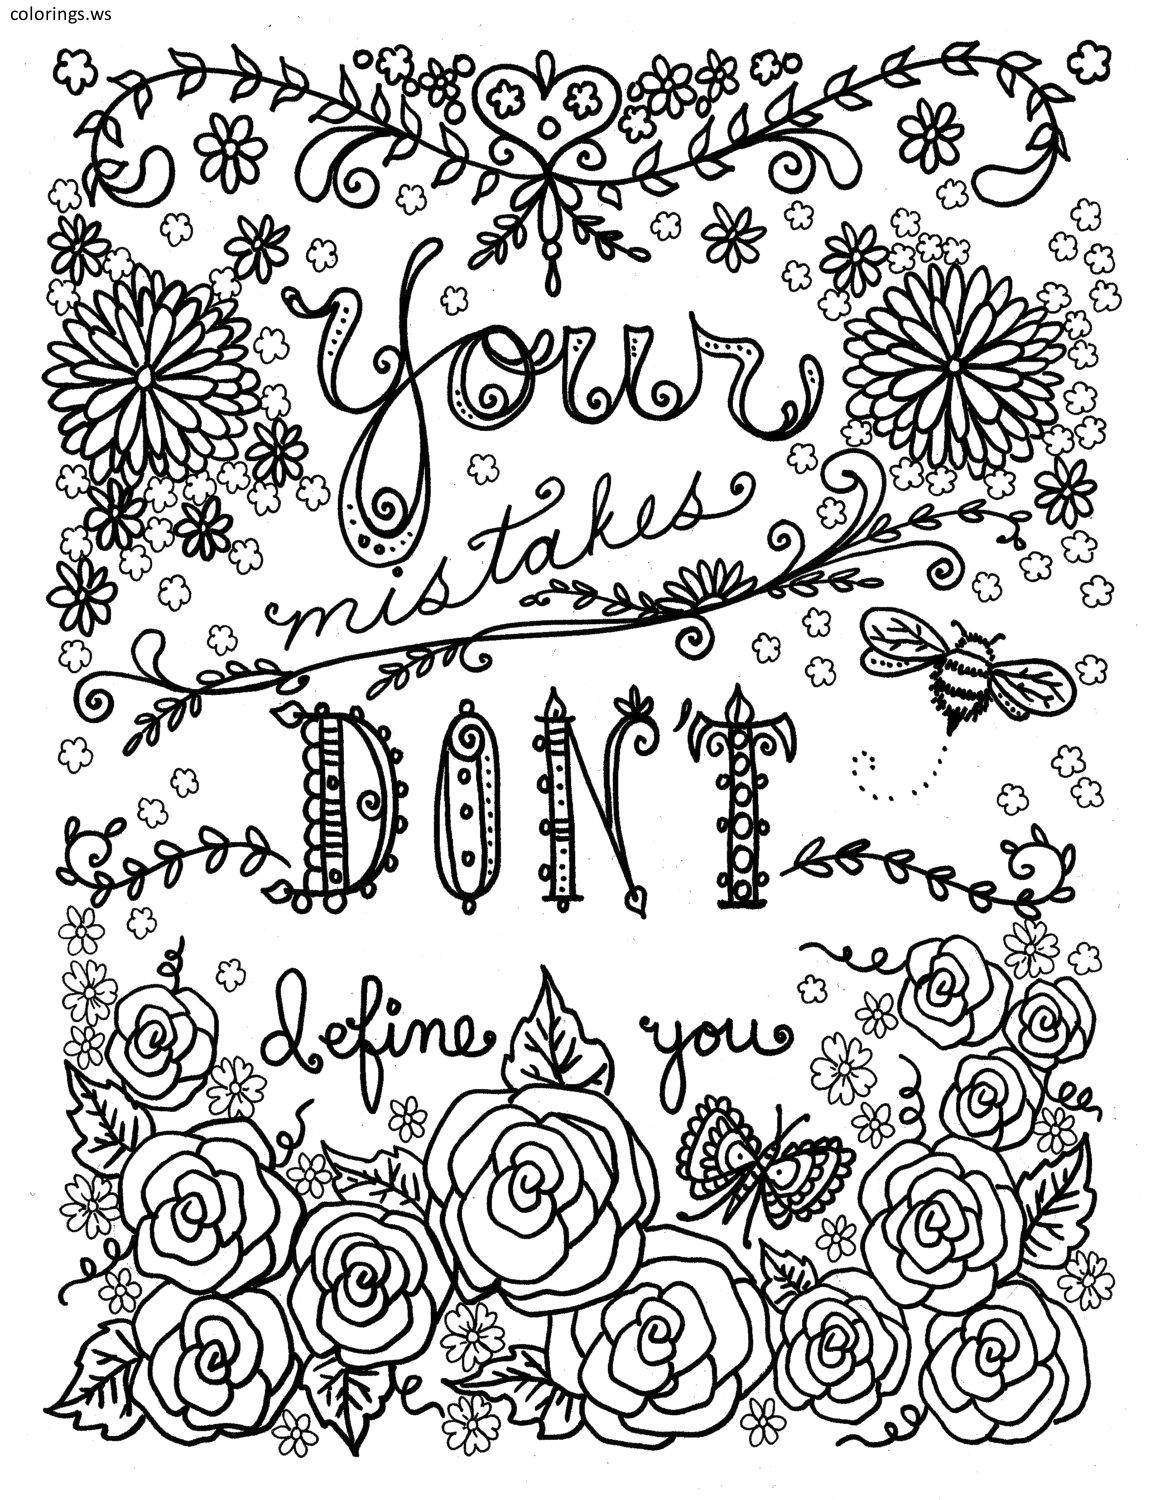 Mistakes Sayings Coloring Page, Sayings Coloring Pages, Free